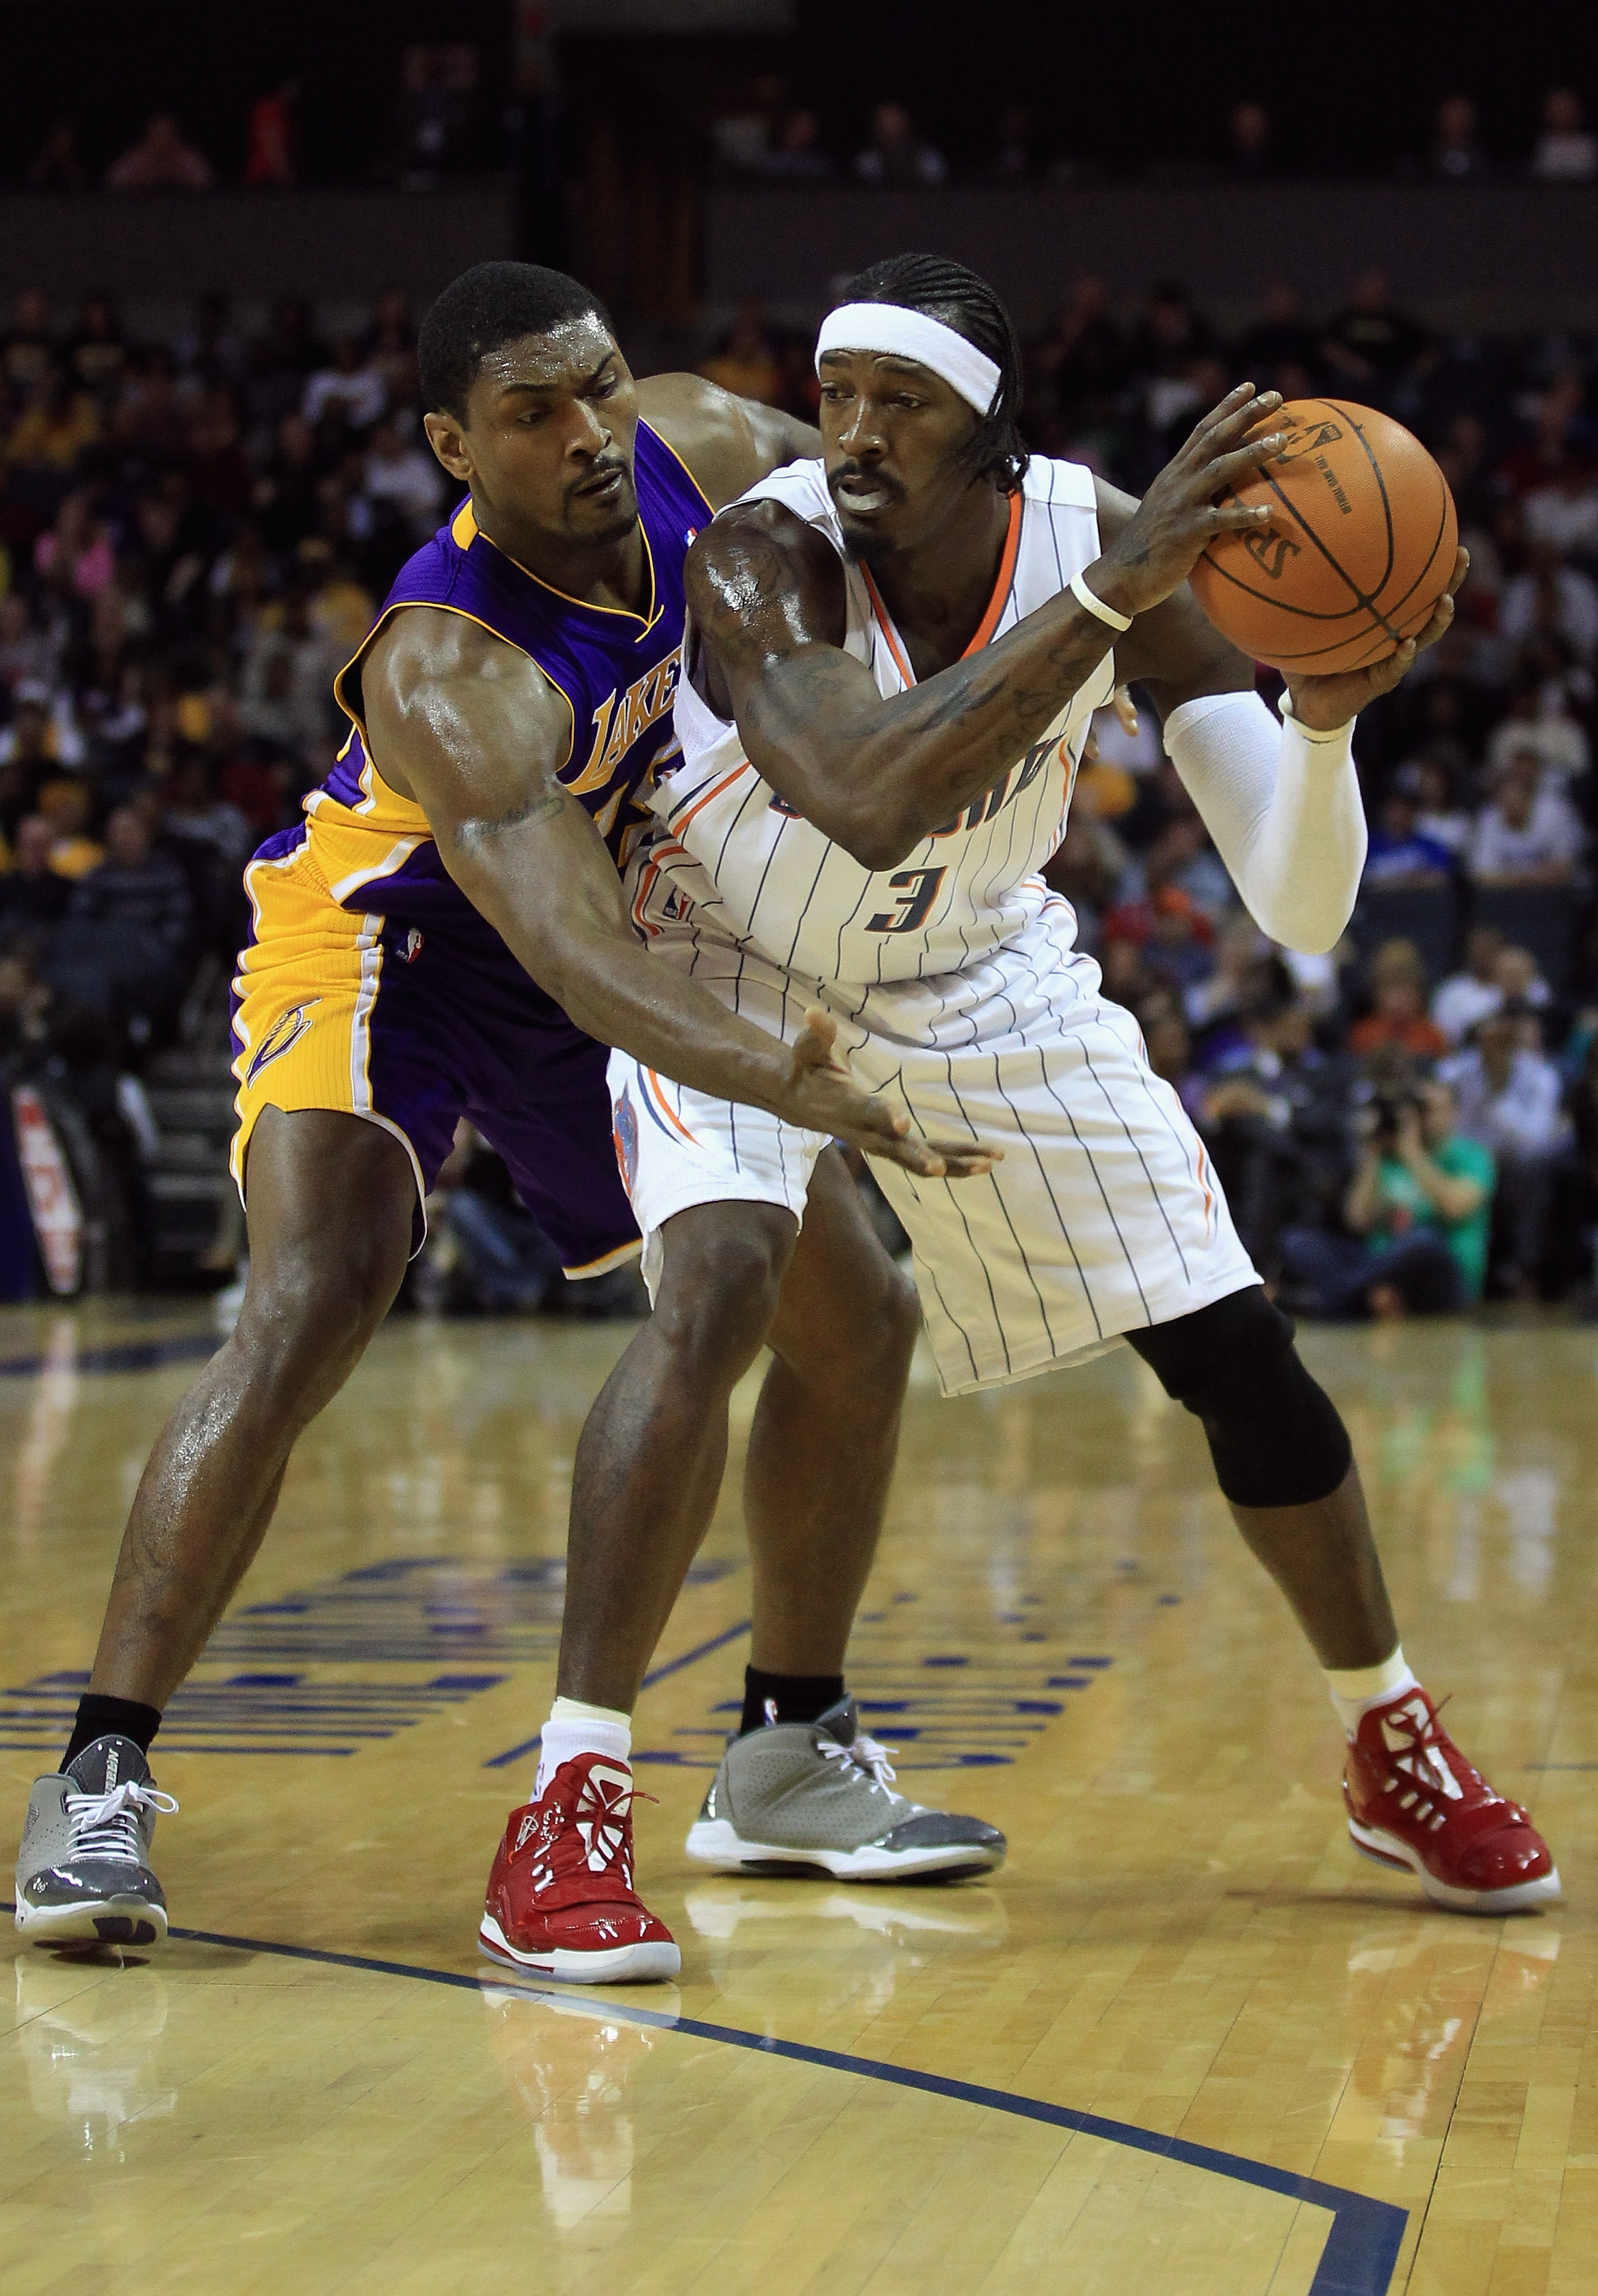 CHARLOTTE, NC - FEBRUARY 14:  Ron Artest #15 of the Los Angeles Lakers reaches for the ball against Gerald Wallace #3 of the Charlotte Bobcats during their game at Time Warner Cable Arena on February 14, 2011 in Charlotte, North Carolina. NOTE TO USER: Us